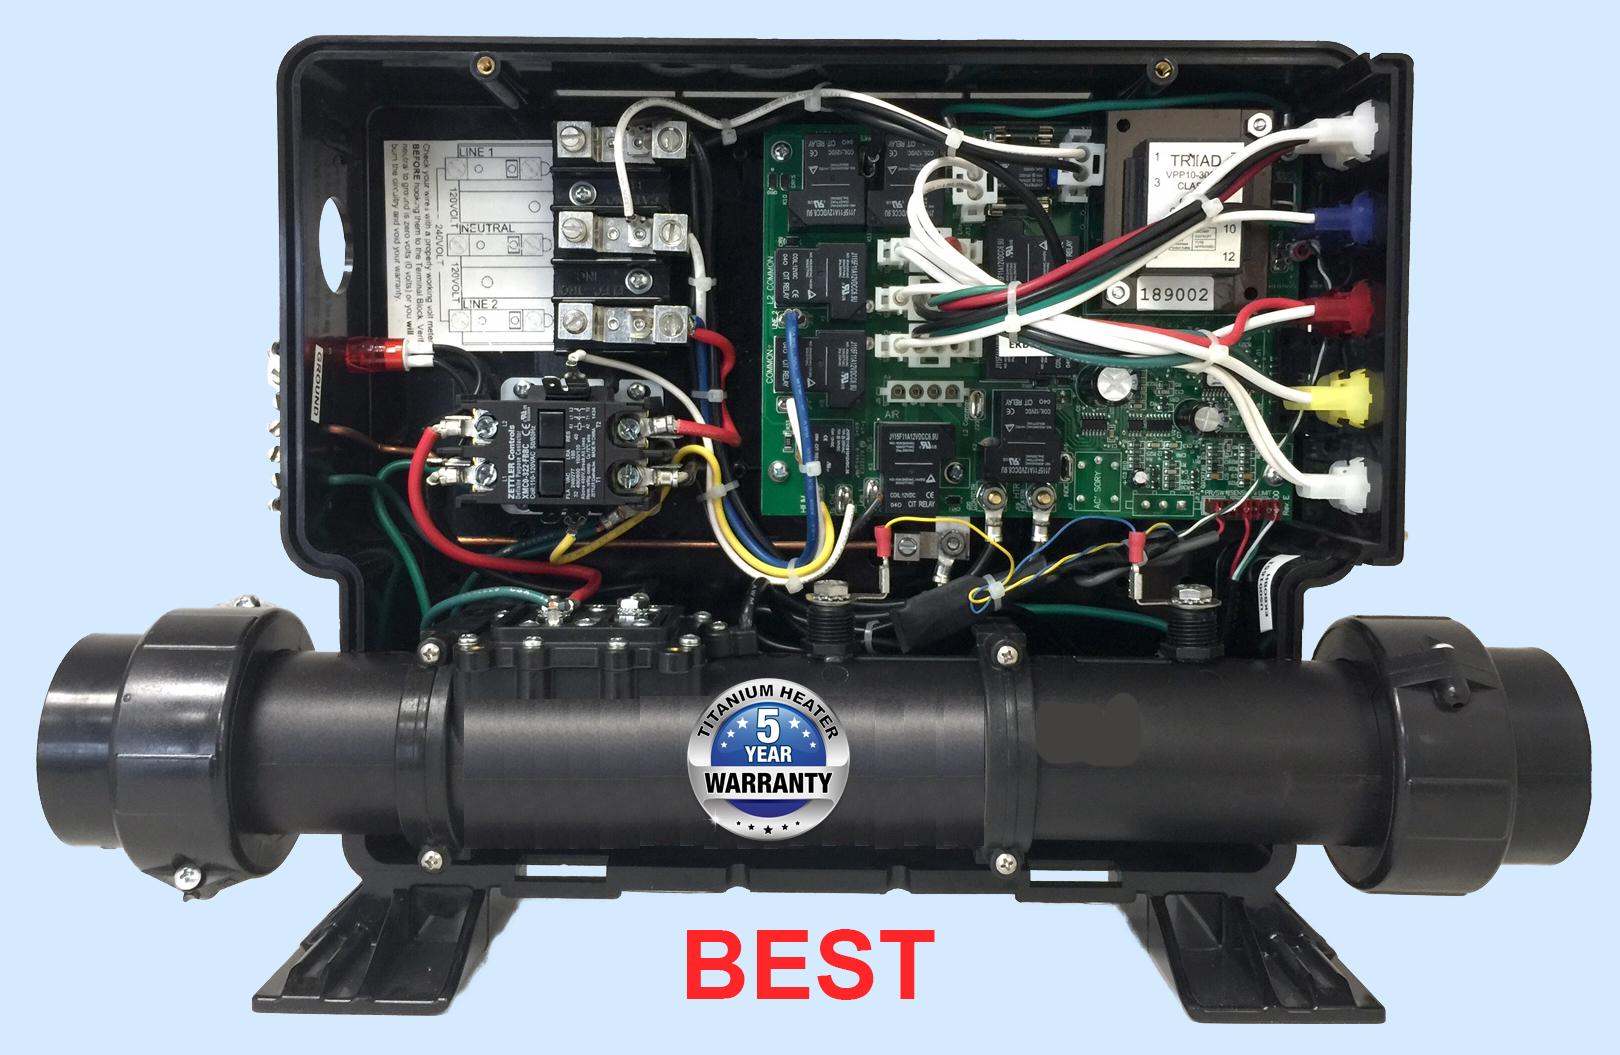 USC_CosmoHeat_Warranty_Open_best $299 95 direct replacement for balboa spa control $299 95 direct